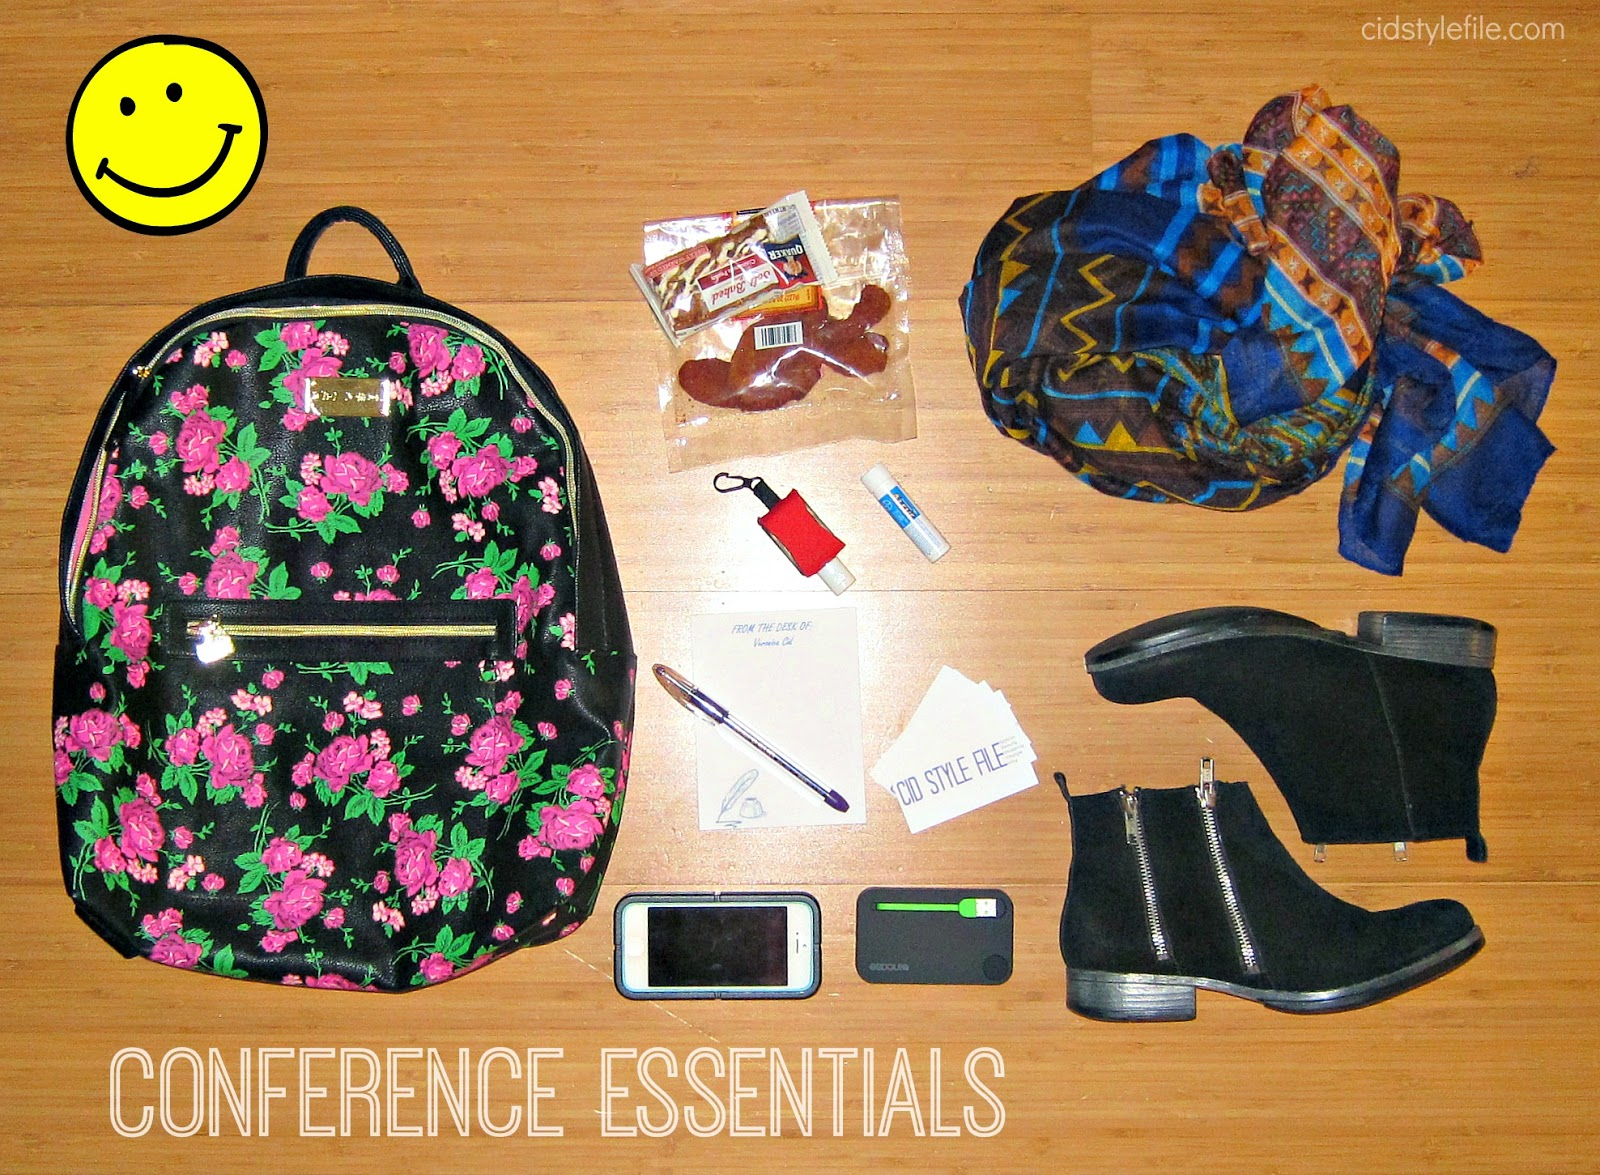 we all grow, blogger conference, must have items, essentials, iphone, business cards, comfy shoes, scarfs, portable charger, sanitizer, snacks, cid style file, latina bloggers,